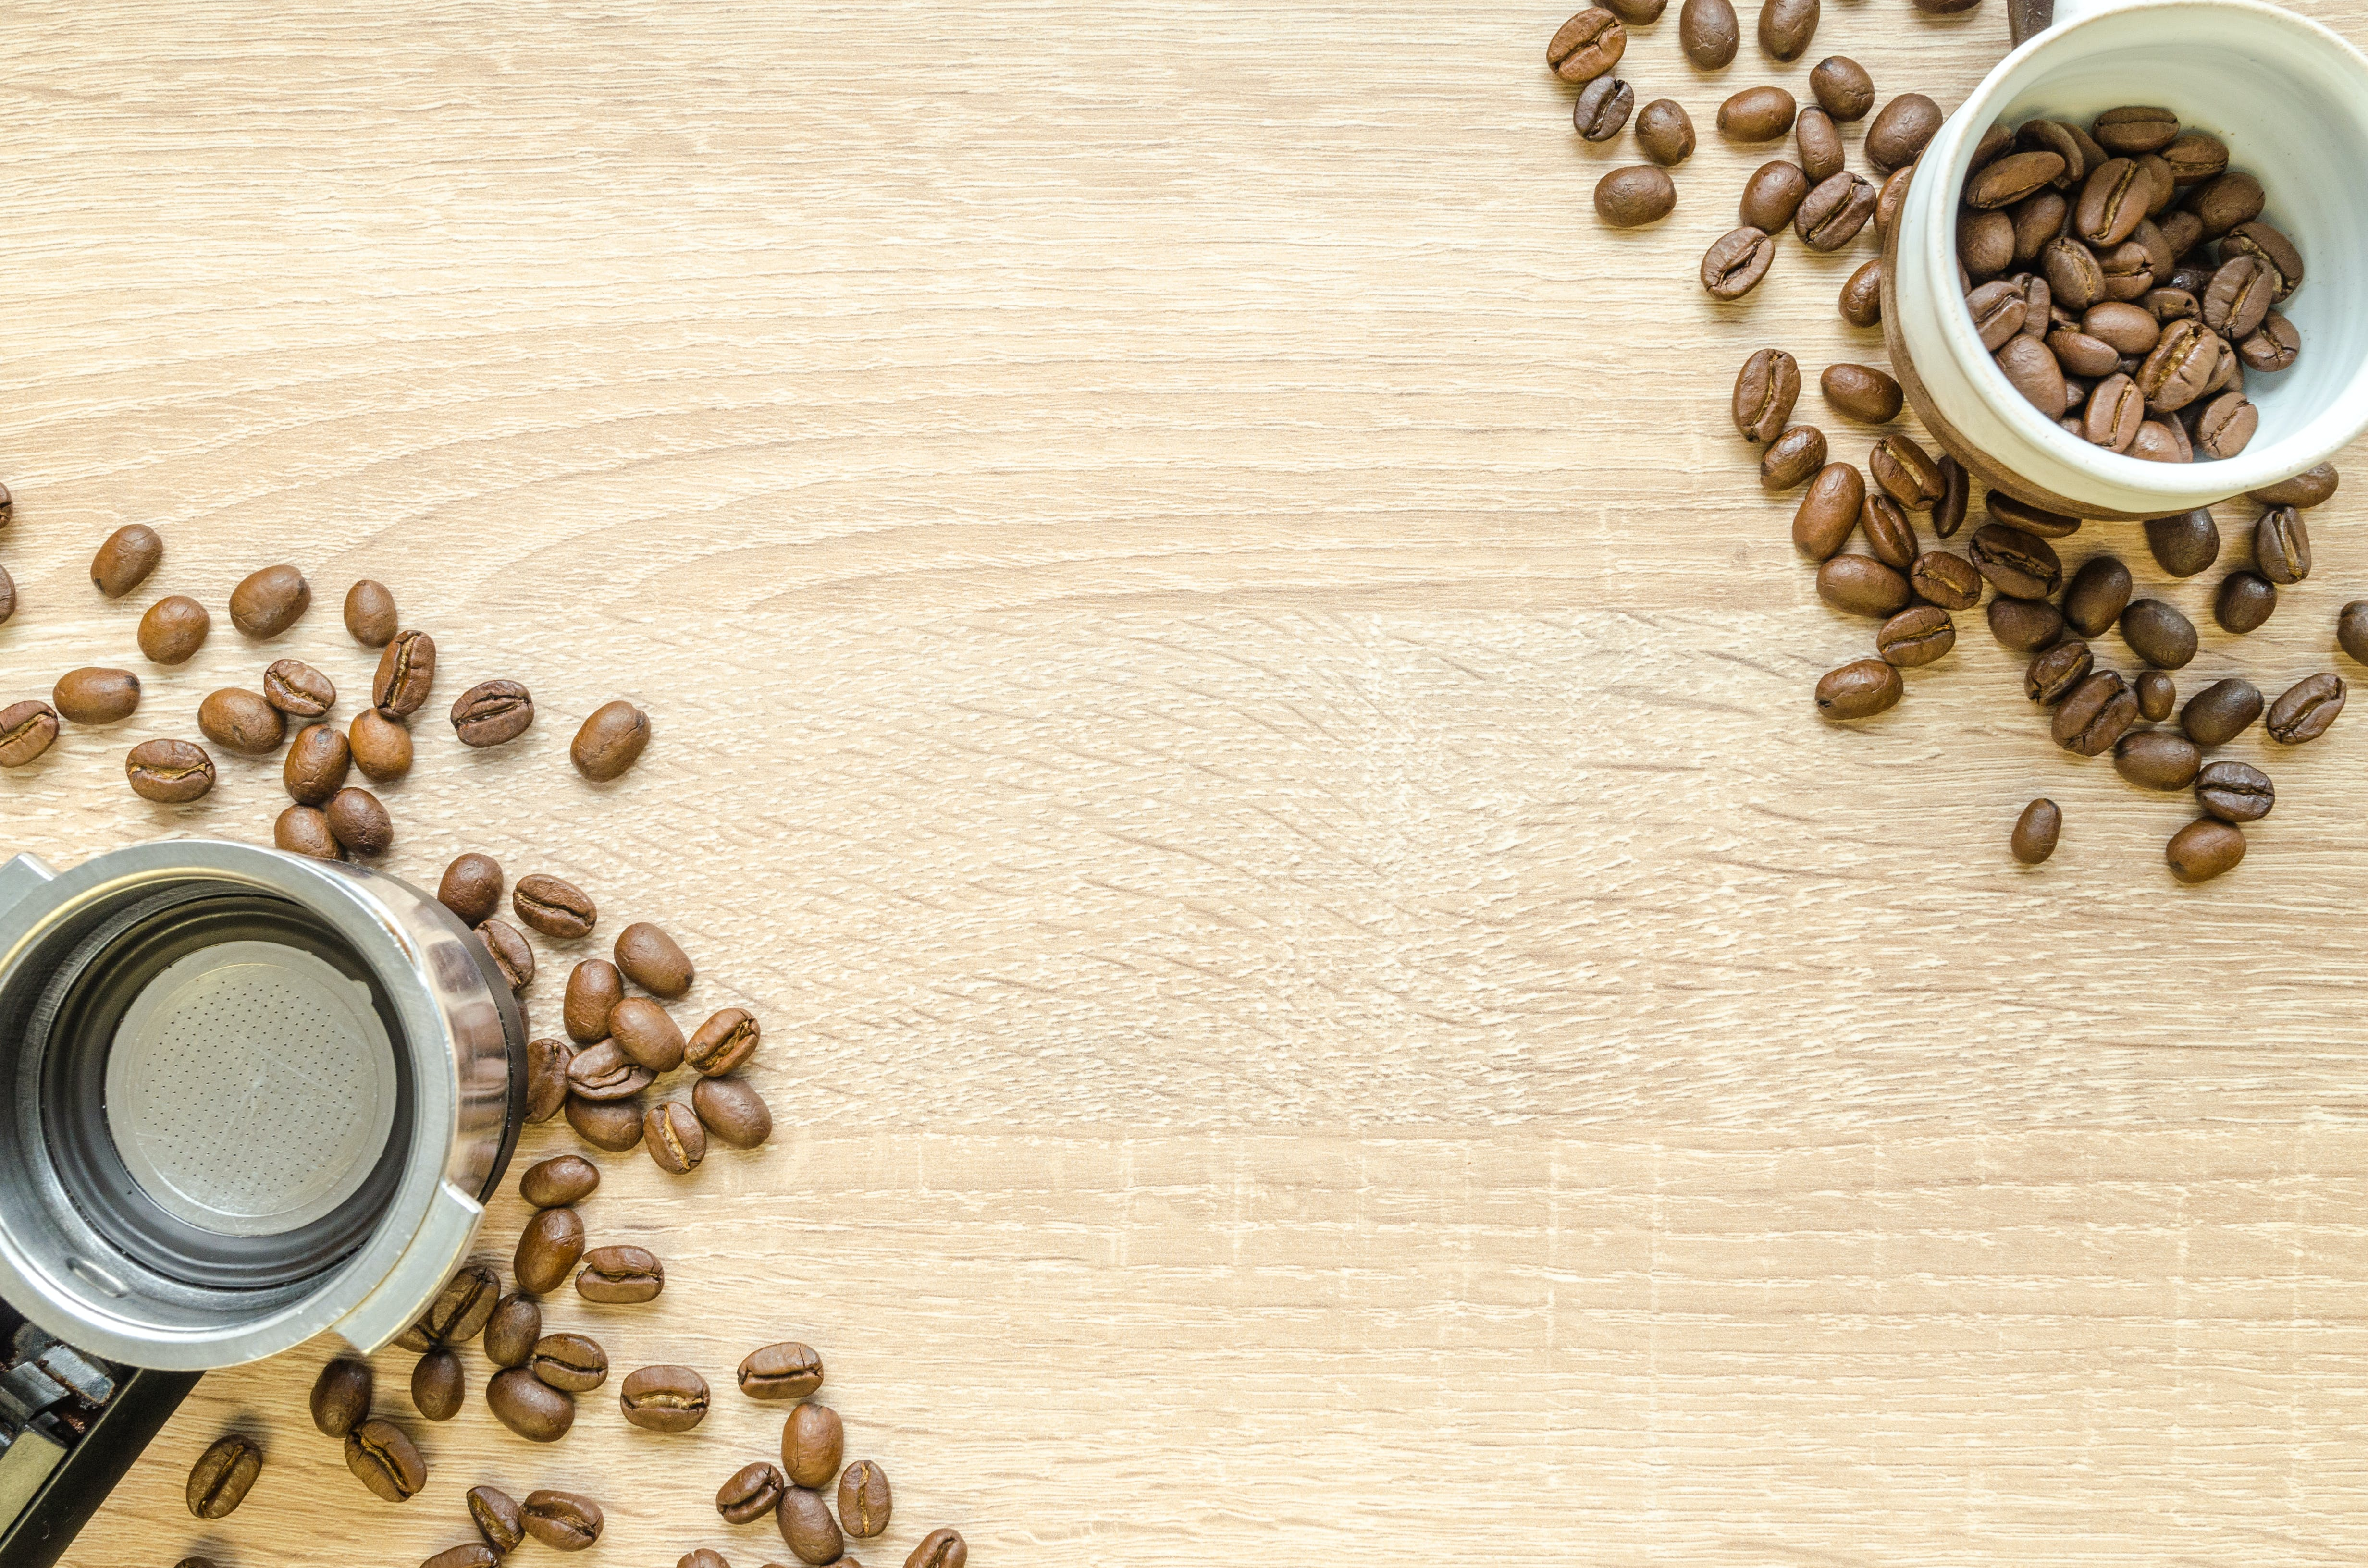 Brown Coffee Beans on White Plastic Container